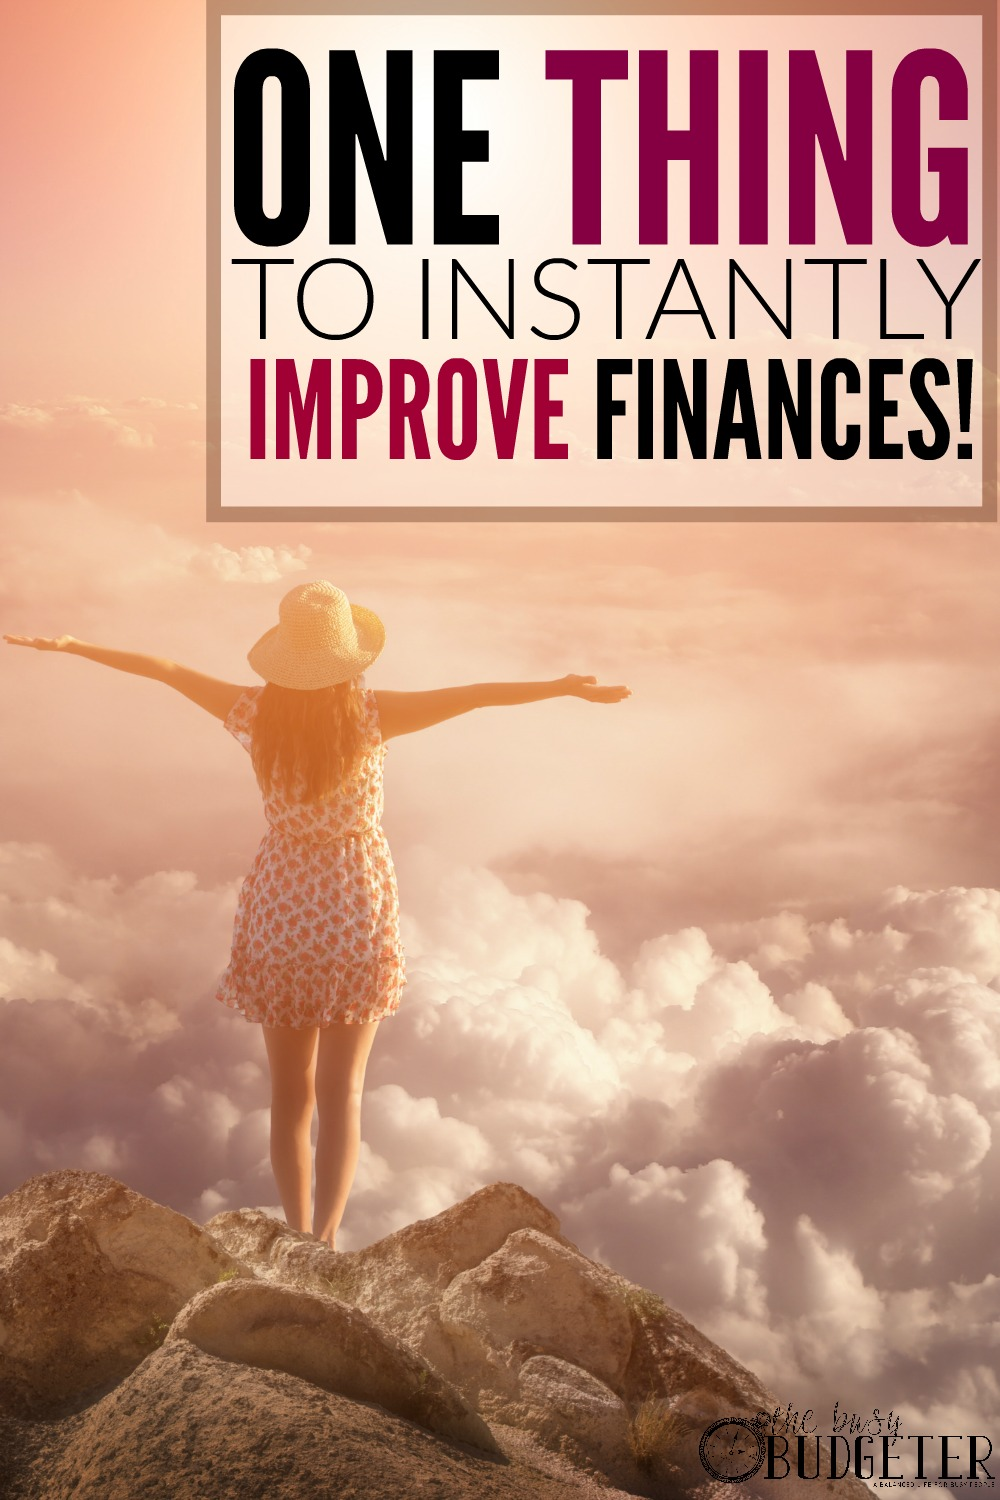 Instantly Improve Finances: Wow, this definitely nails my issues on the head! I used to totally ignore my money situation until it was staring me in the face - now I'm a lot better at being on top of it and it has changed everything!